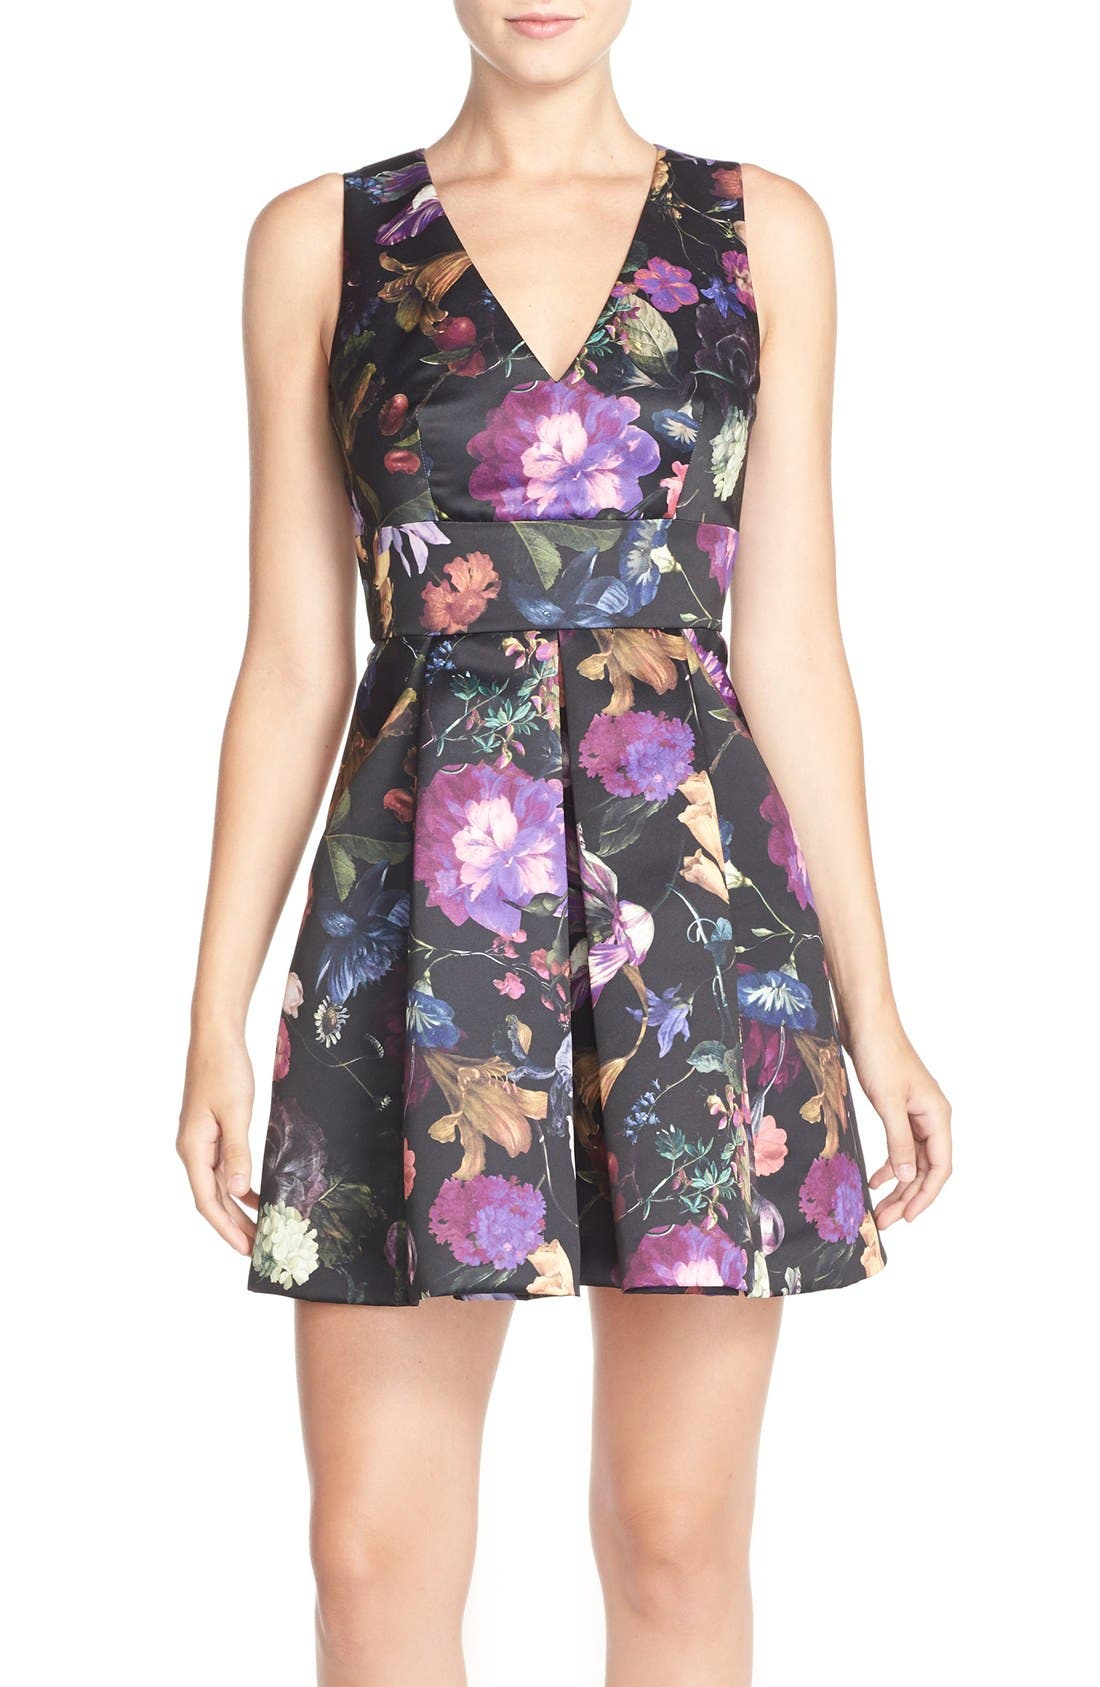 Main Image - Cythia Rowley 'Winter' Floral Print Woven Fit & Flare Dress